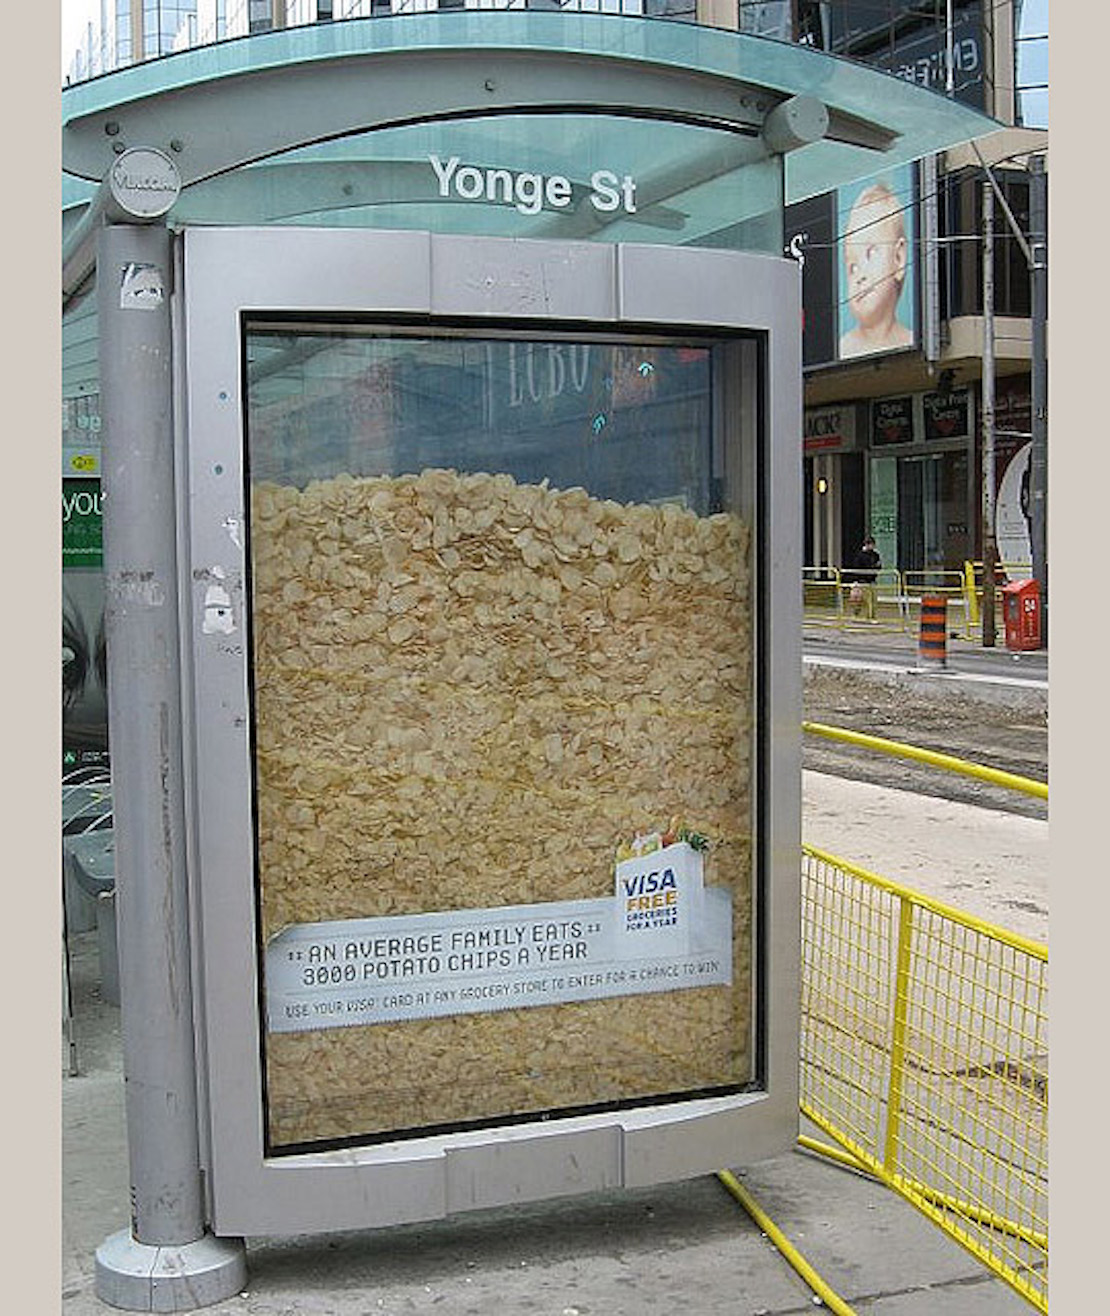 48 Fresh And Creative Bus Stop Advertisements That Will Blow Your Mind 2